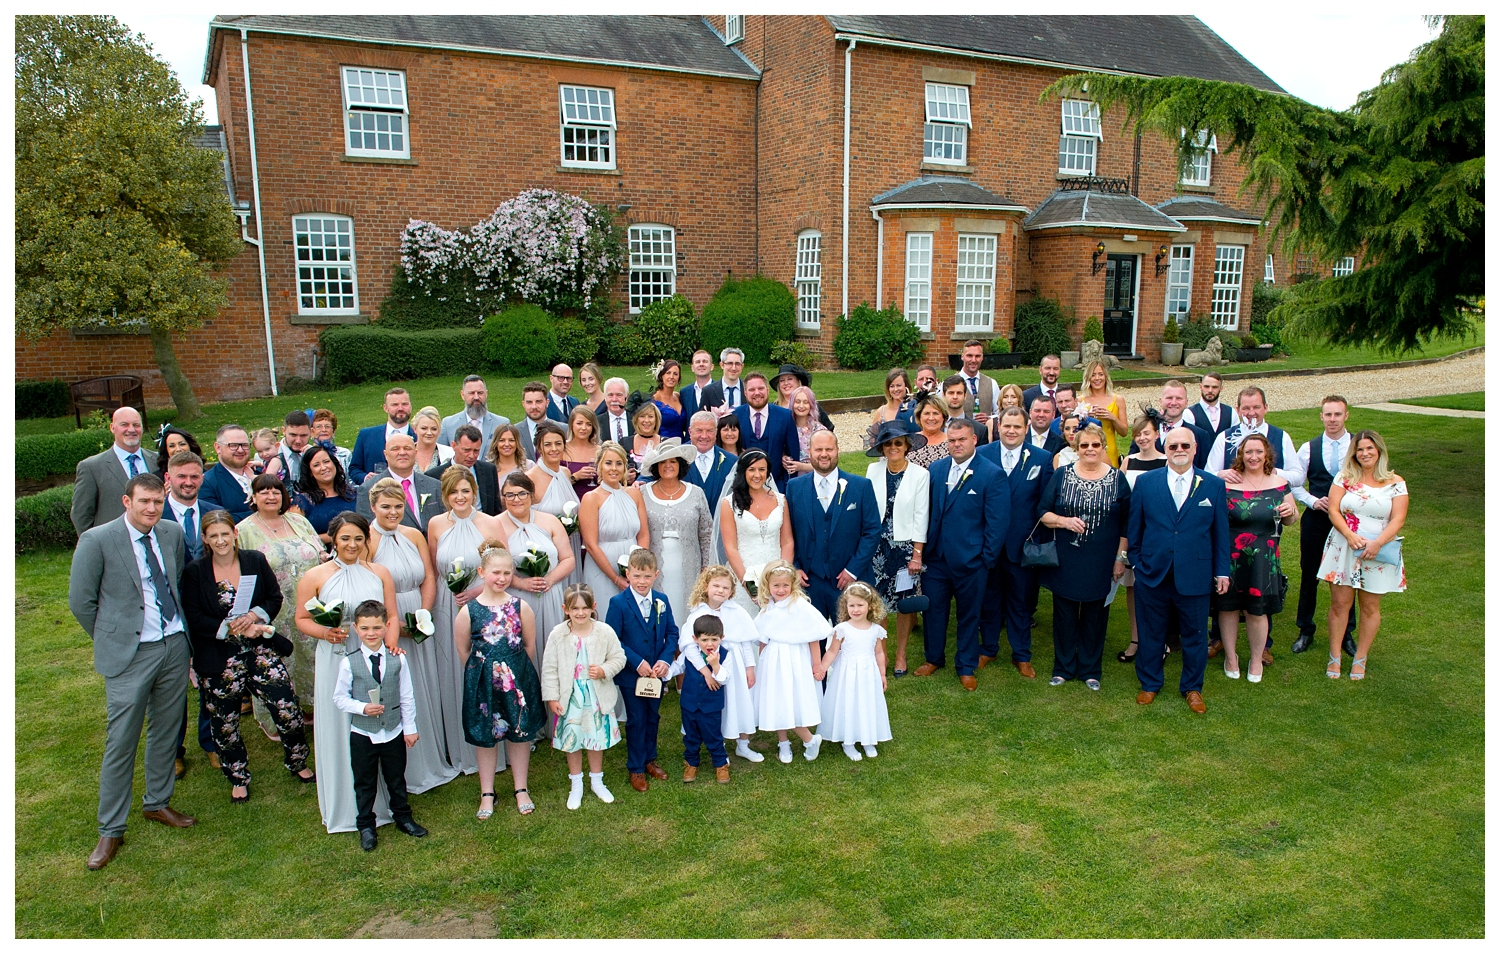 Swancar-Farm-Wedding-Photography_0044